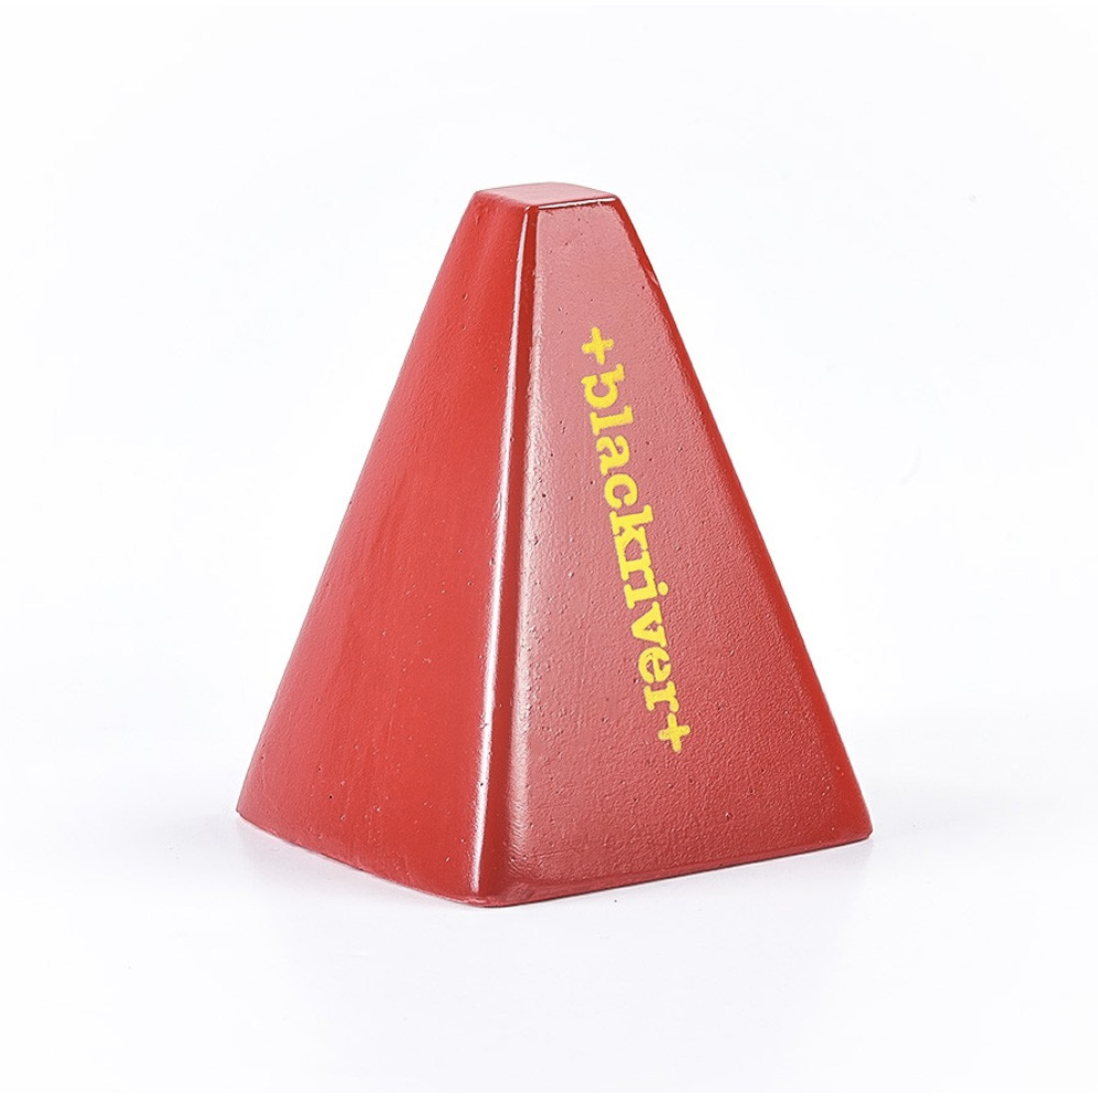 Blackriver ramps - Wallie Pylon Red